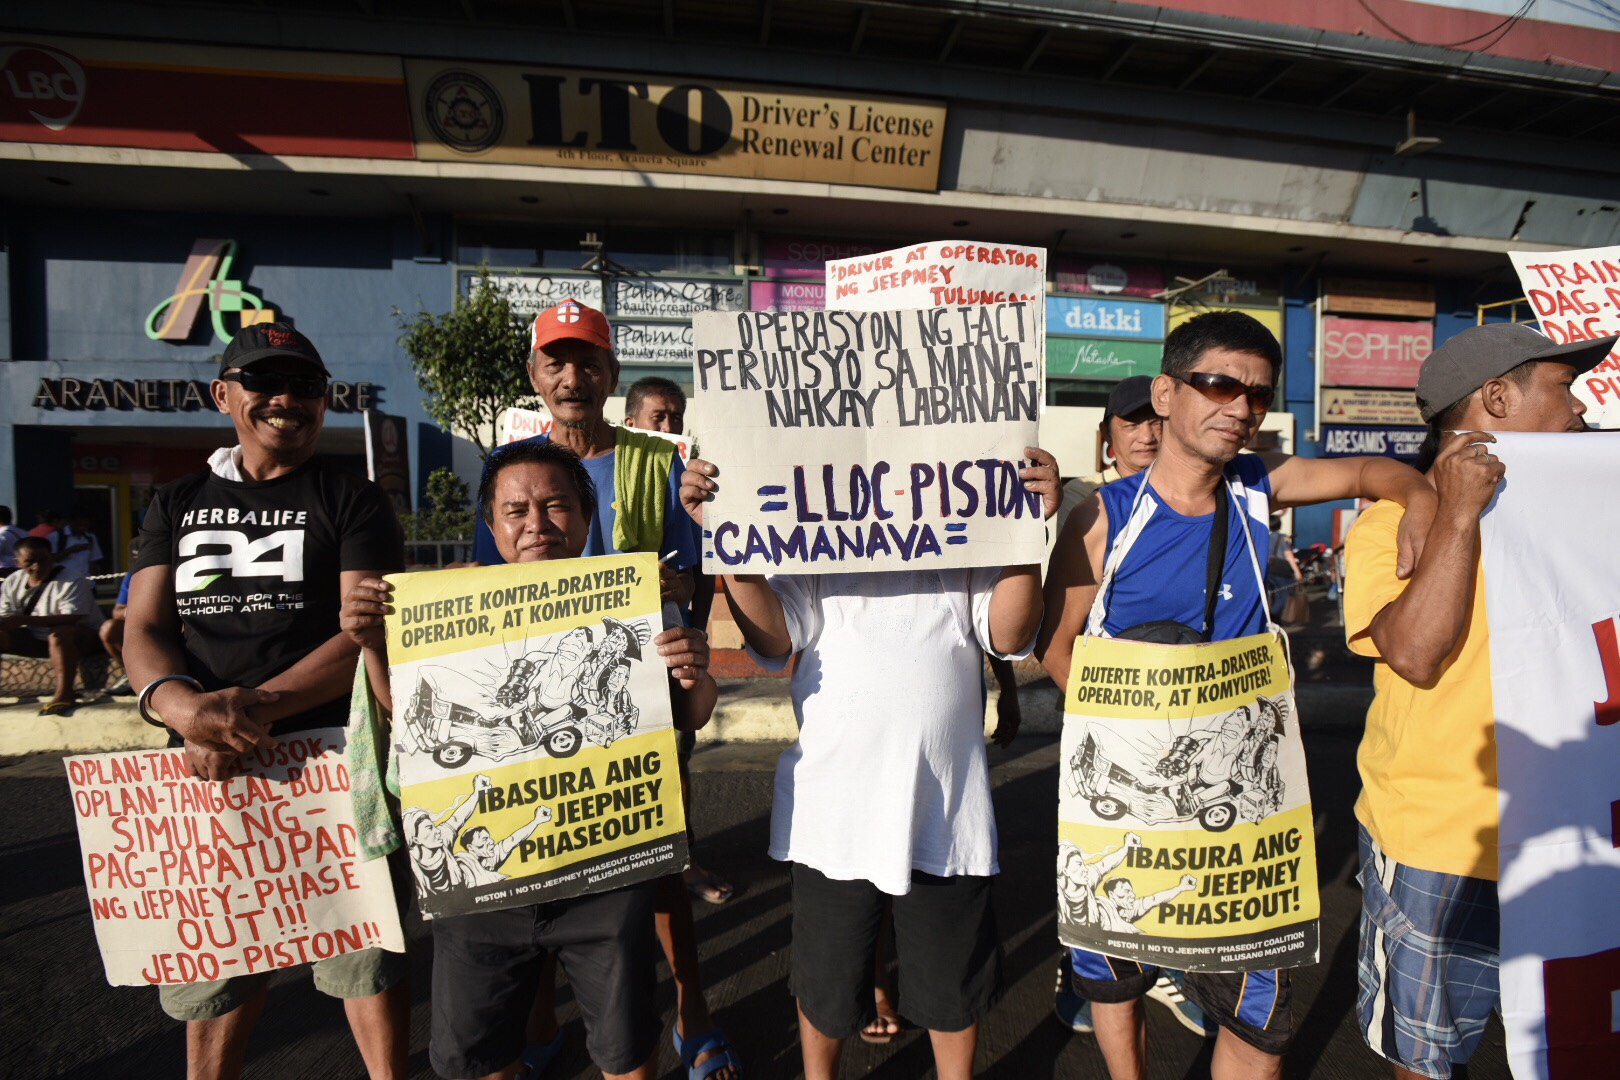 Workers join the transport strike protest in Caloocan. Photo by Maria Tan/Rappler